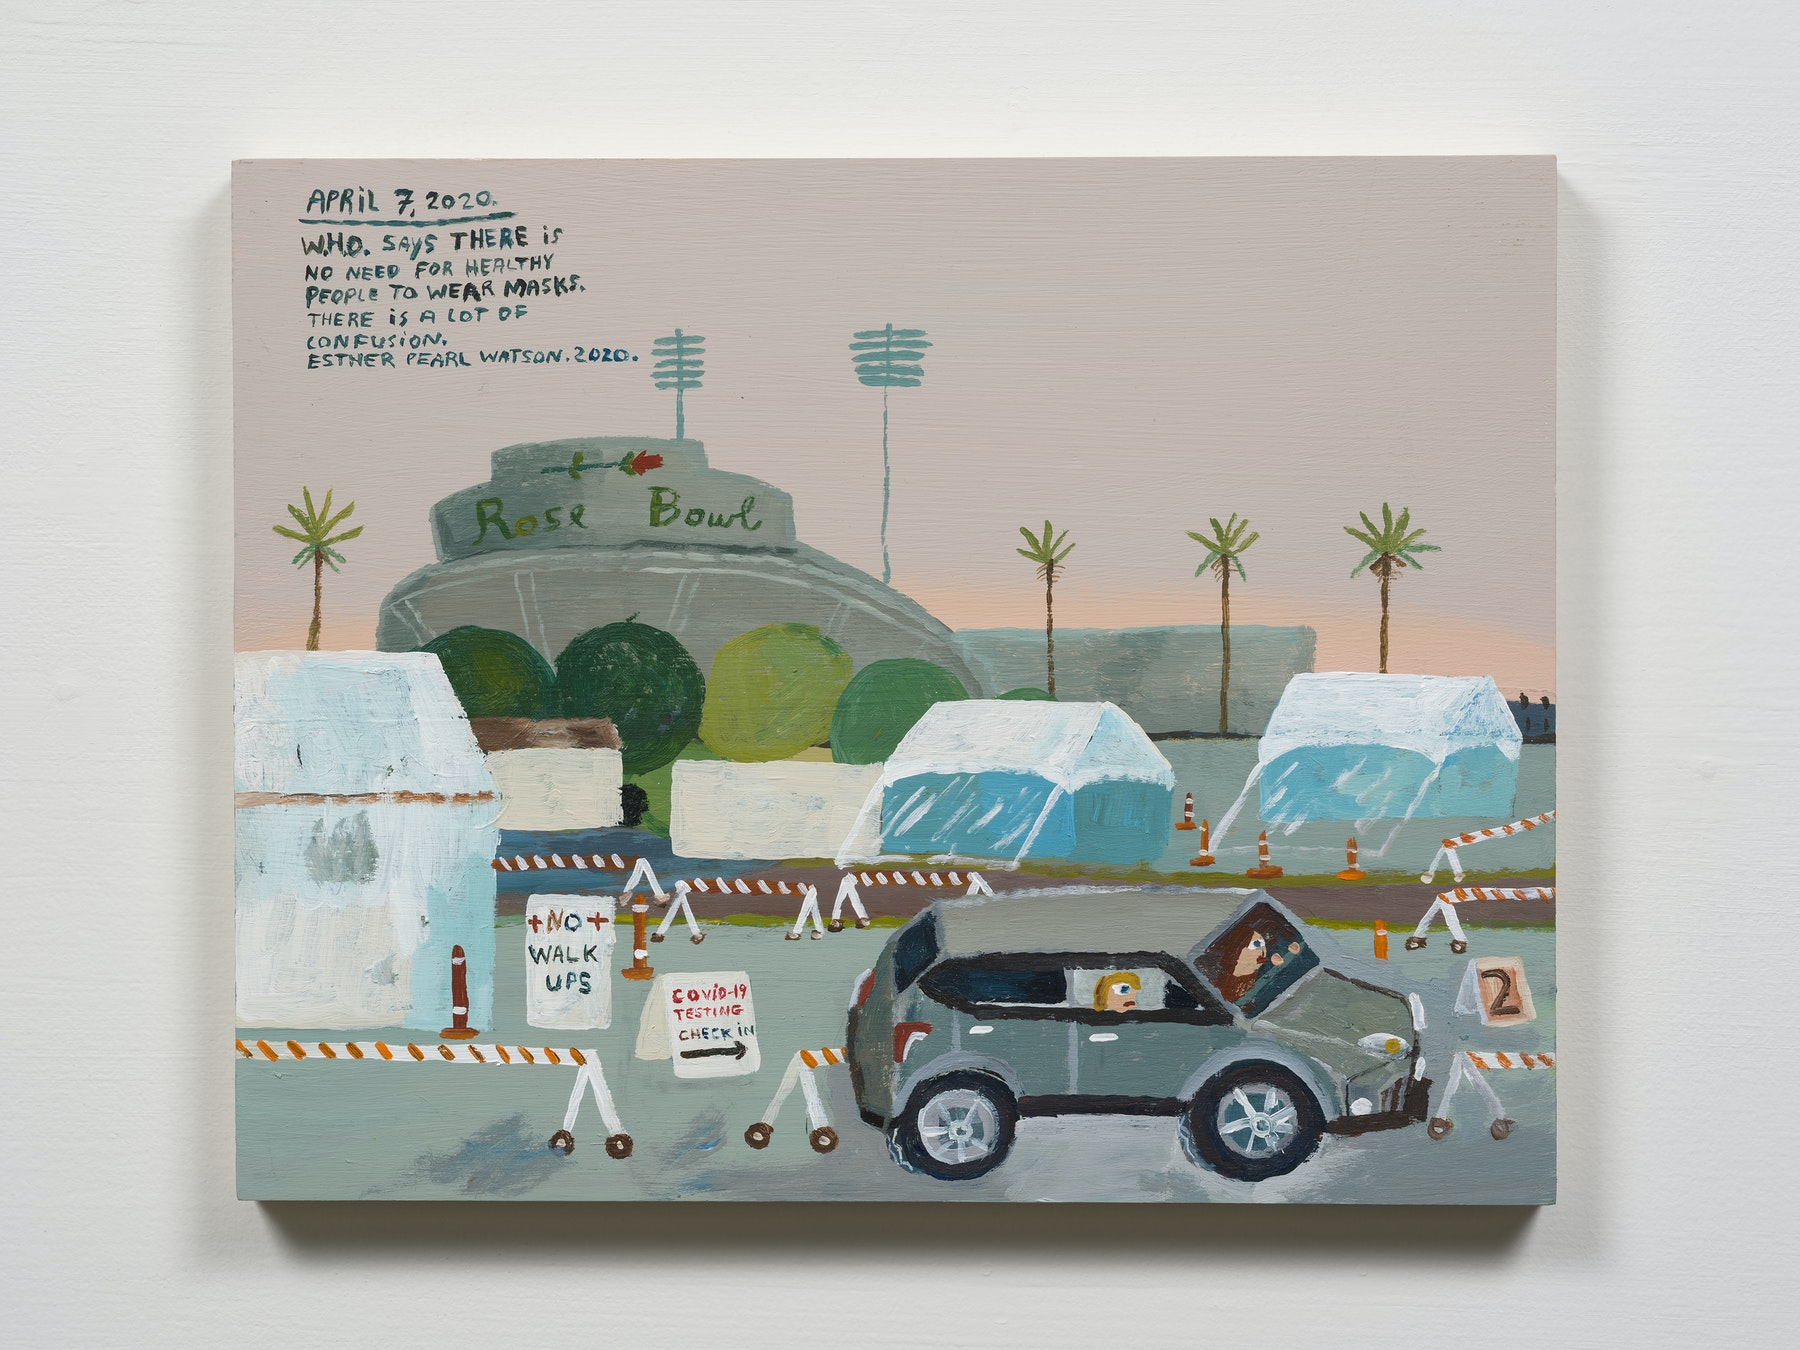 """Esther Pearl Watson """"April 7, Rose Bowl Covid-Testing,"""" 2020 Acrylic with pencil on panel 11 x 14"""" [HxW] (27.94 x 35.56 cm) Inventory #EPW256 Courtesy of the artist and Vielmetter Los Angeles Photo credit: Jeff Mclane"""